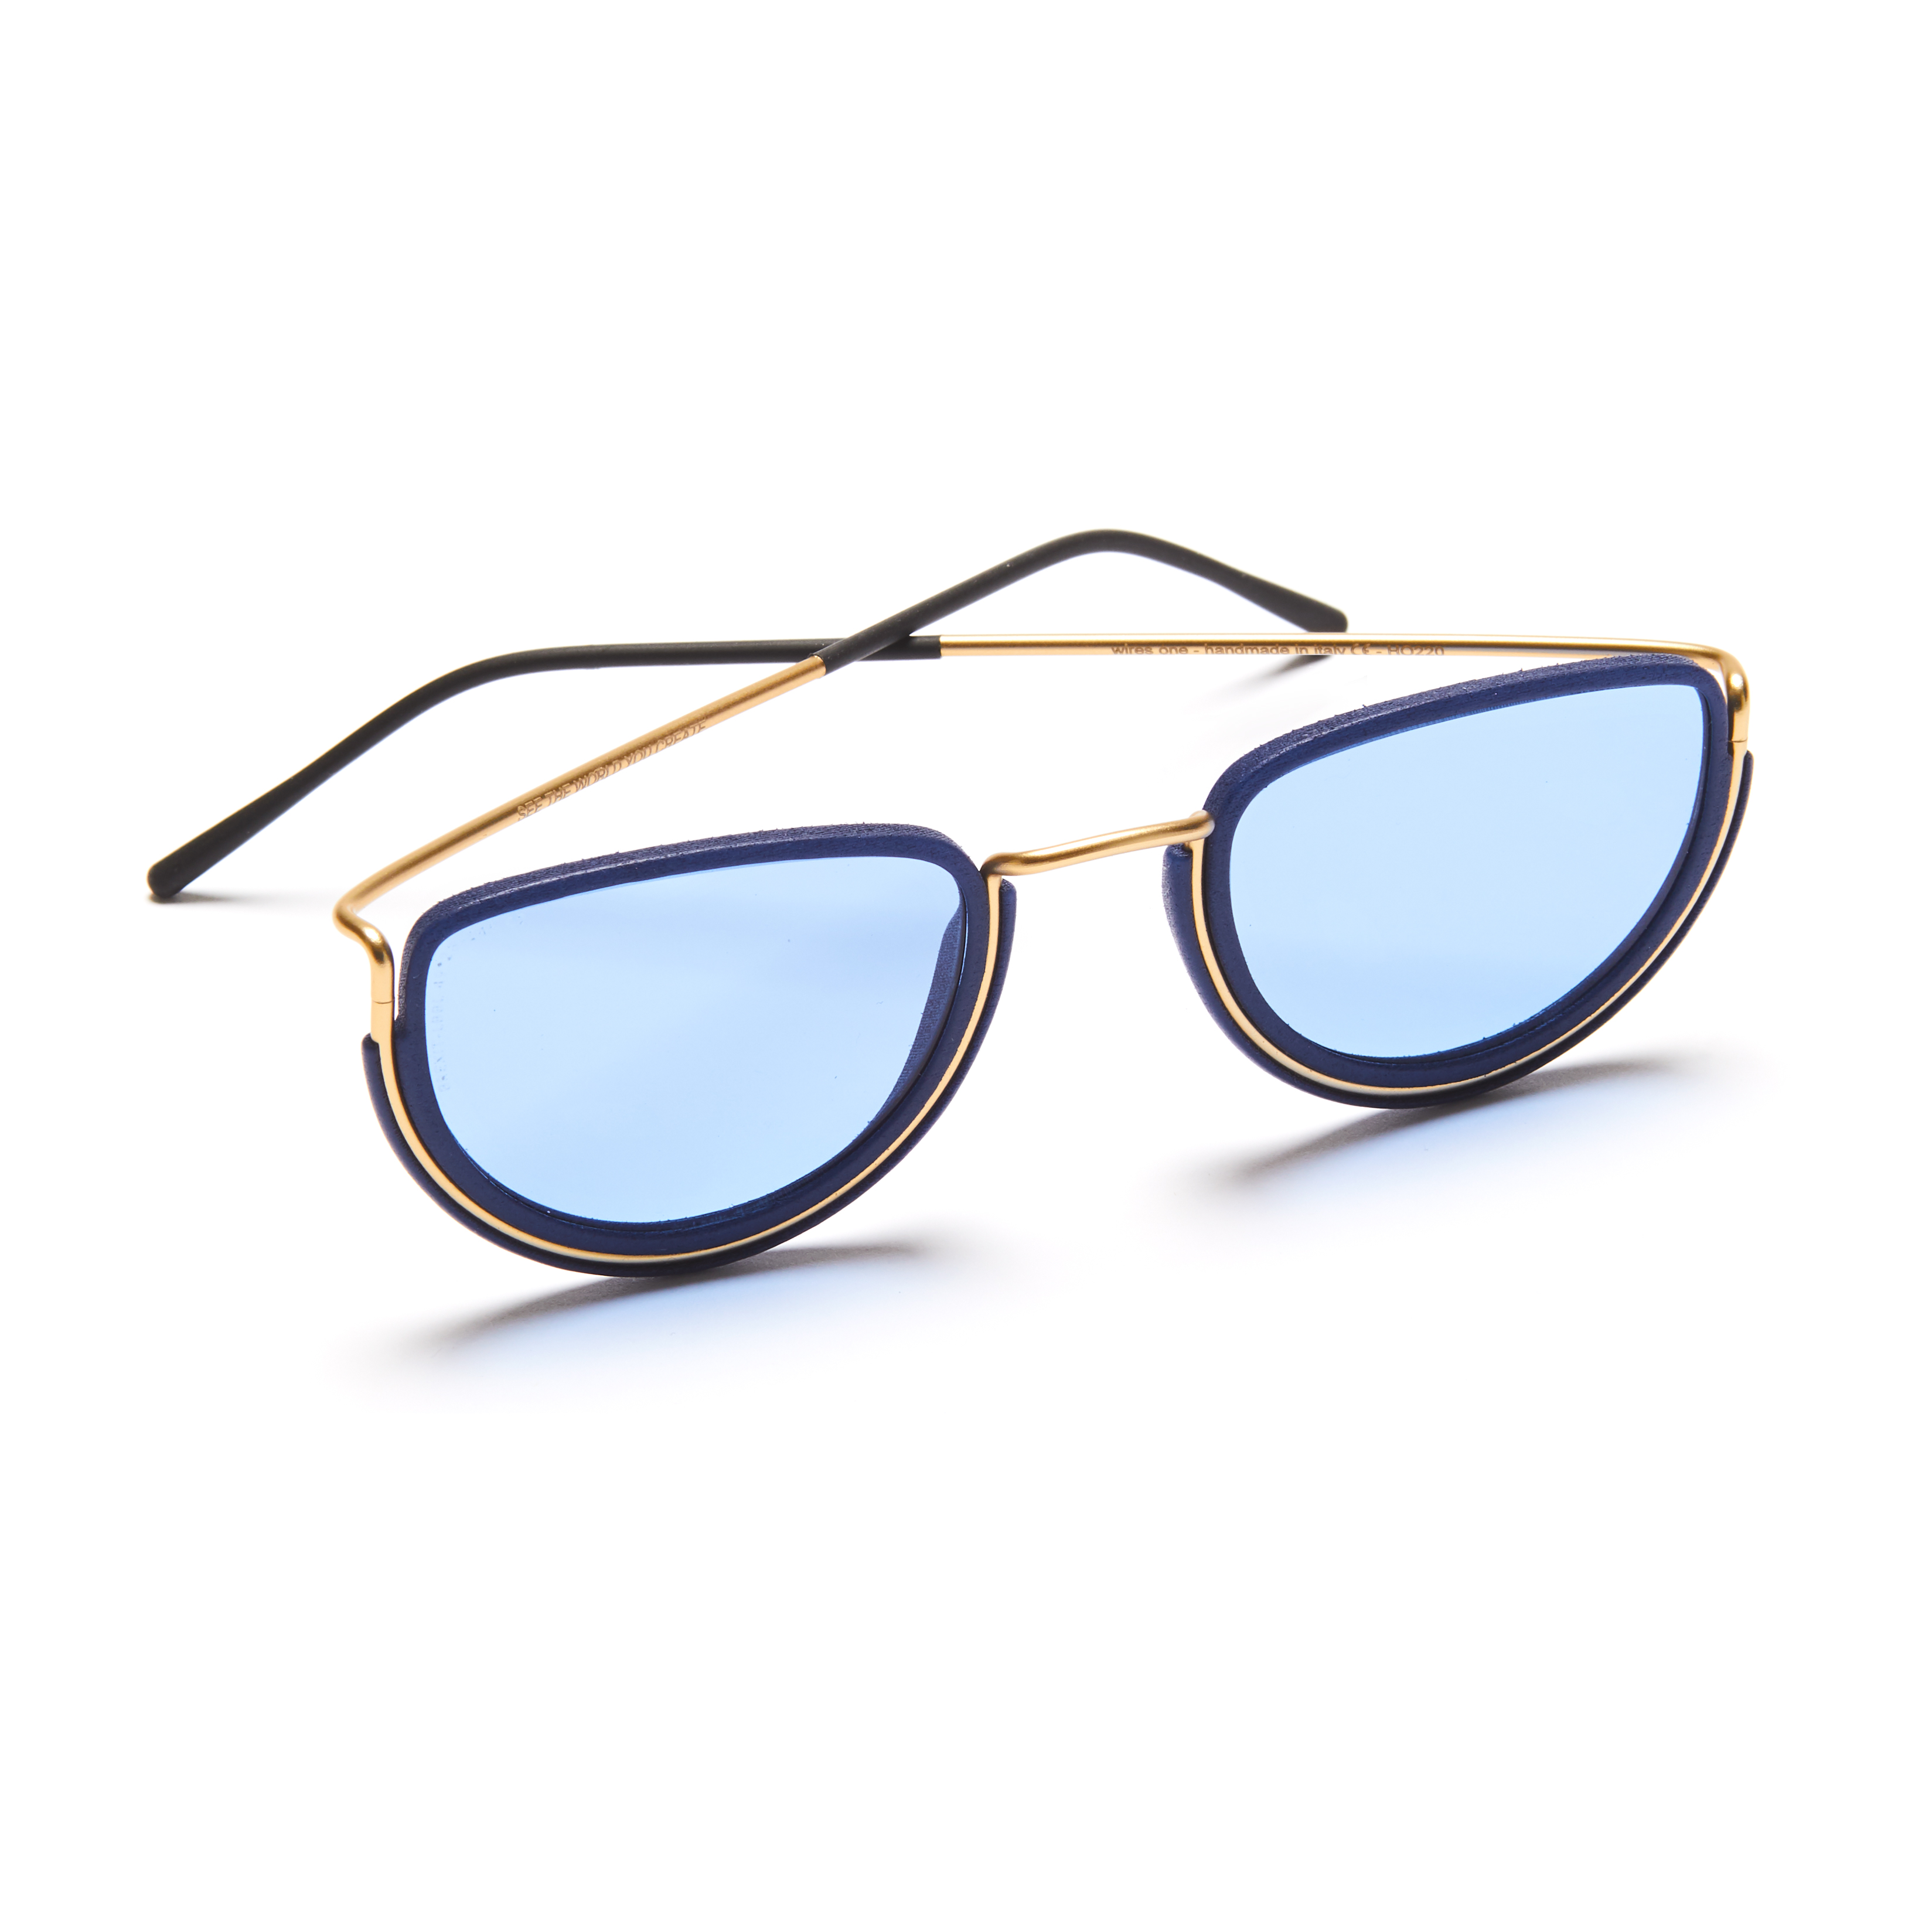 Half Moon Sunglasses by Wires Glasses on curated-crowd.com